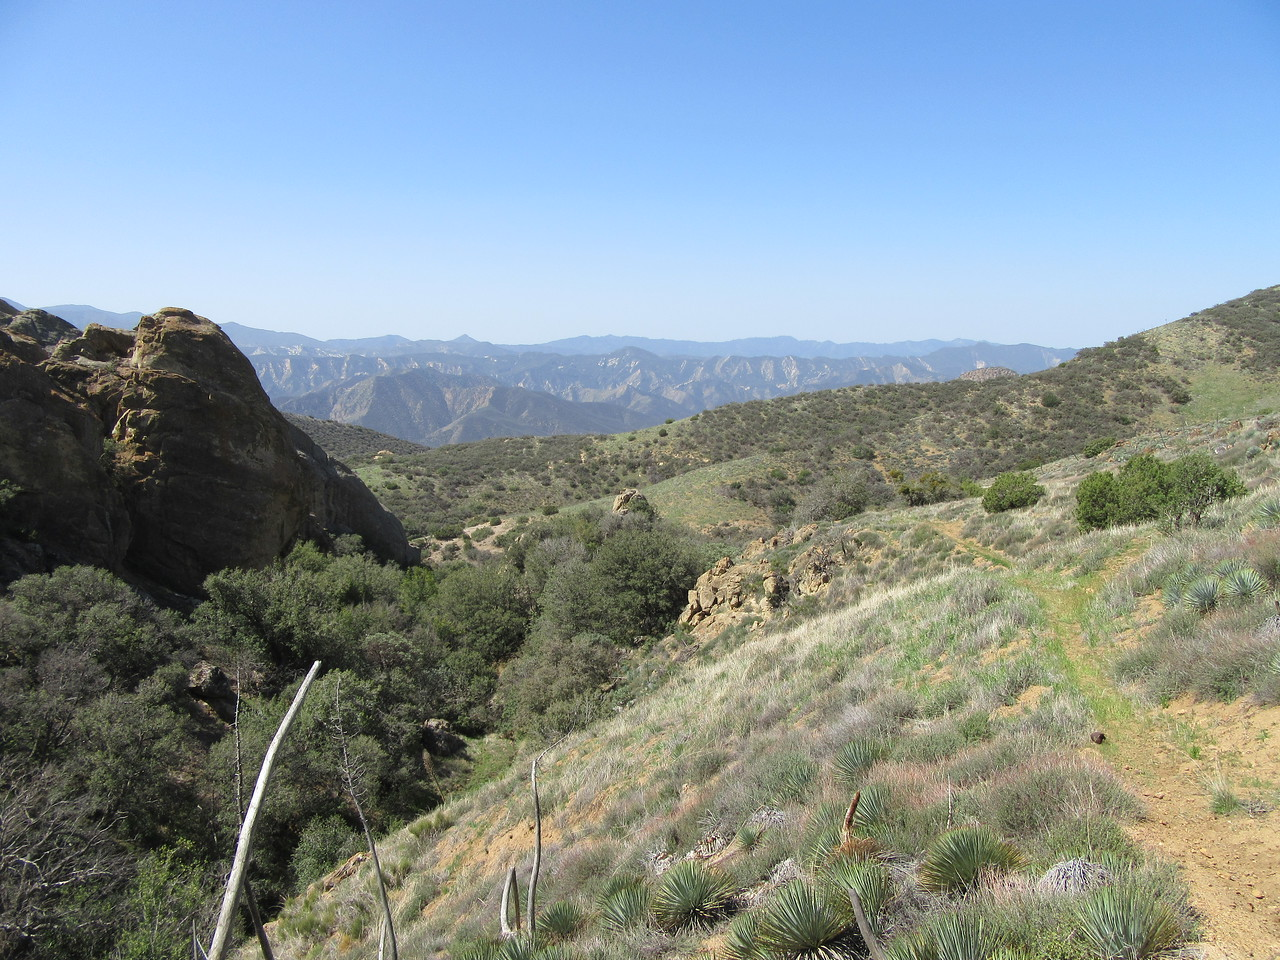 ... before turning to begin our steep drop to Sycamore Camp along the Sisquoc River.